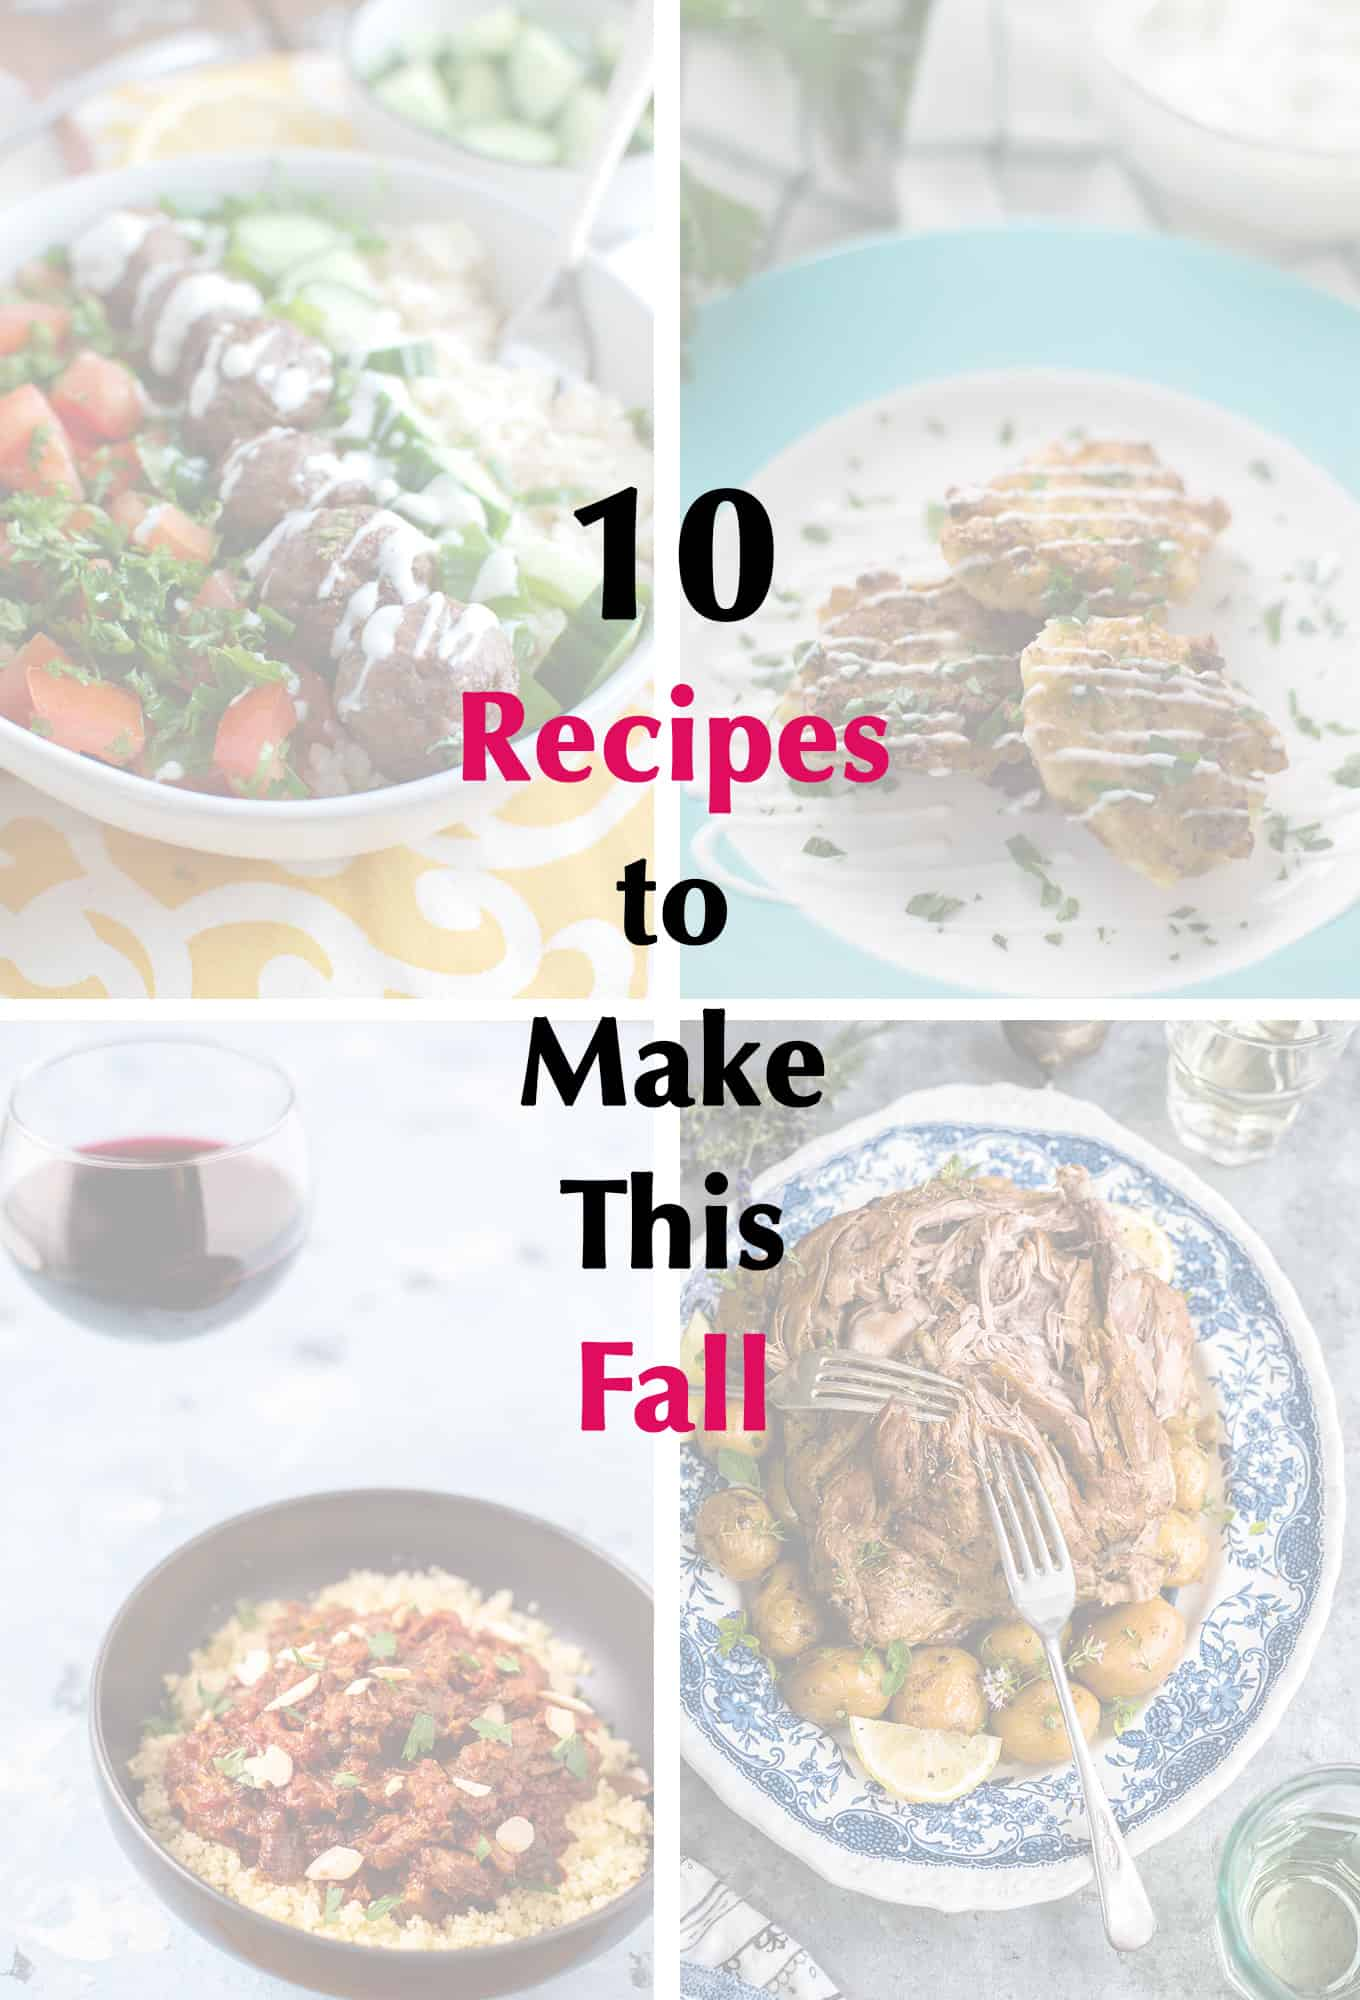 10 Recipes to Make this Fall | omgfood.com